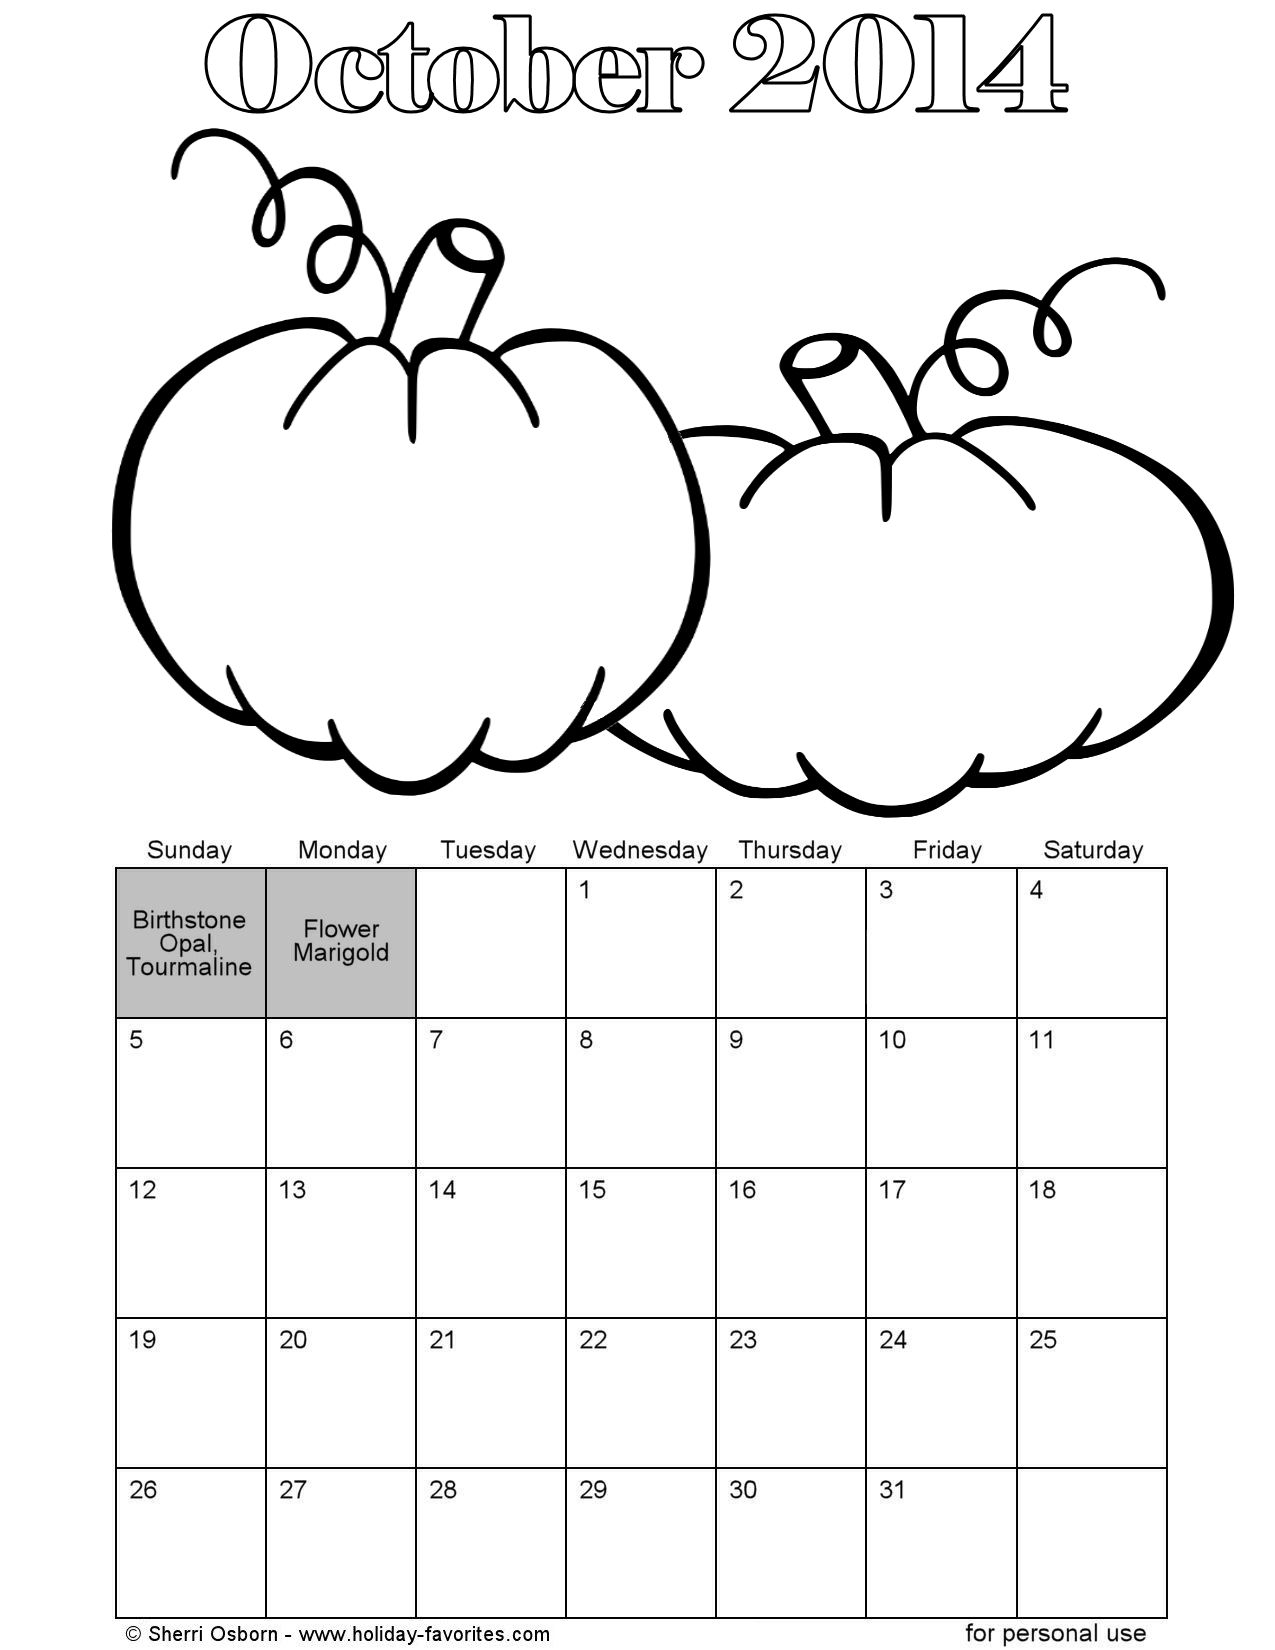 Printable October 2014 Calendars Holiday Favorites